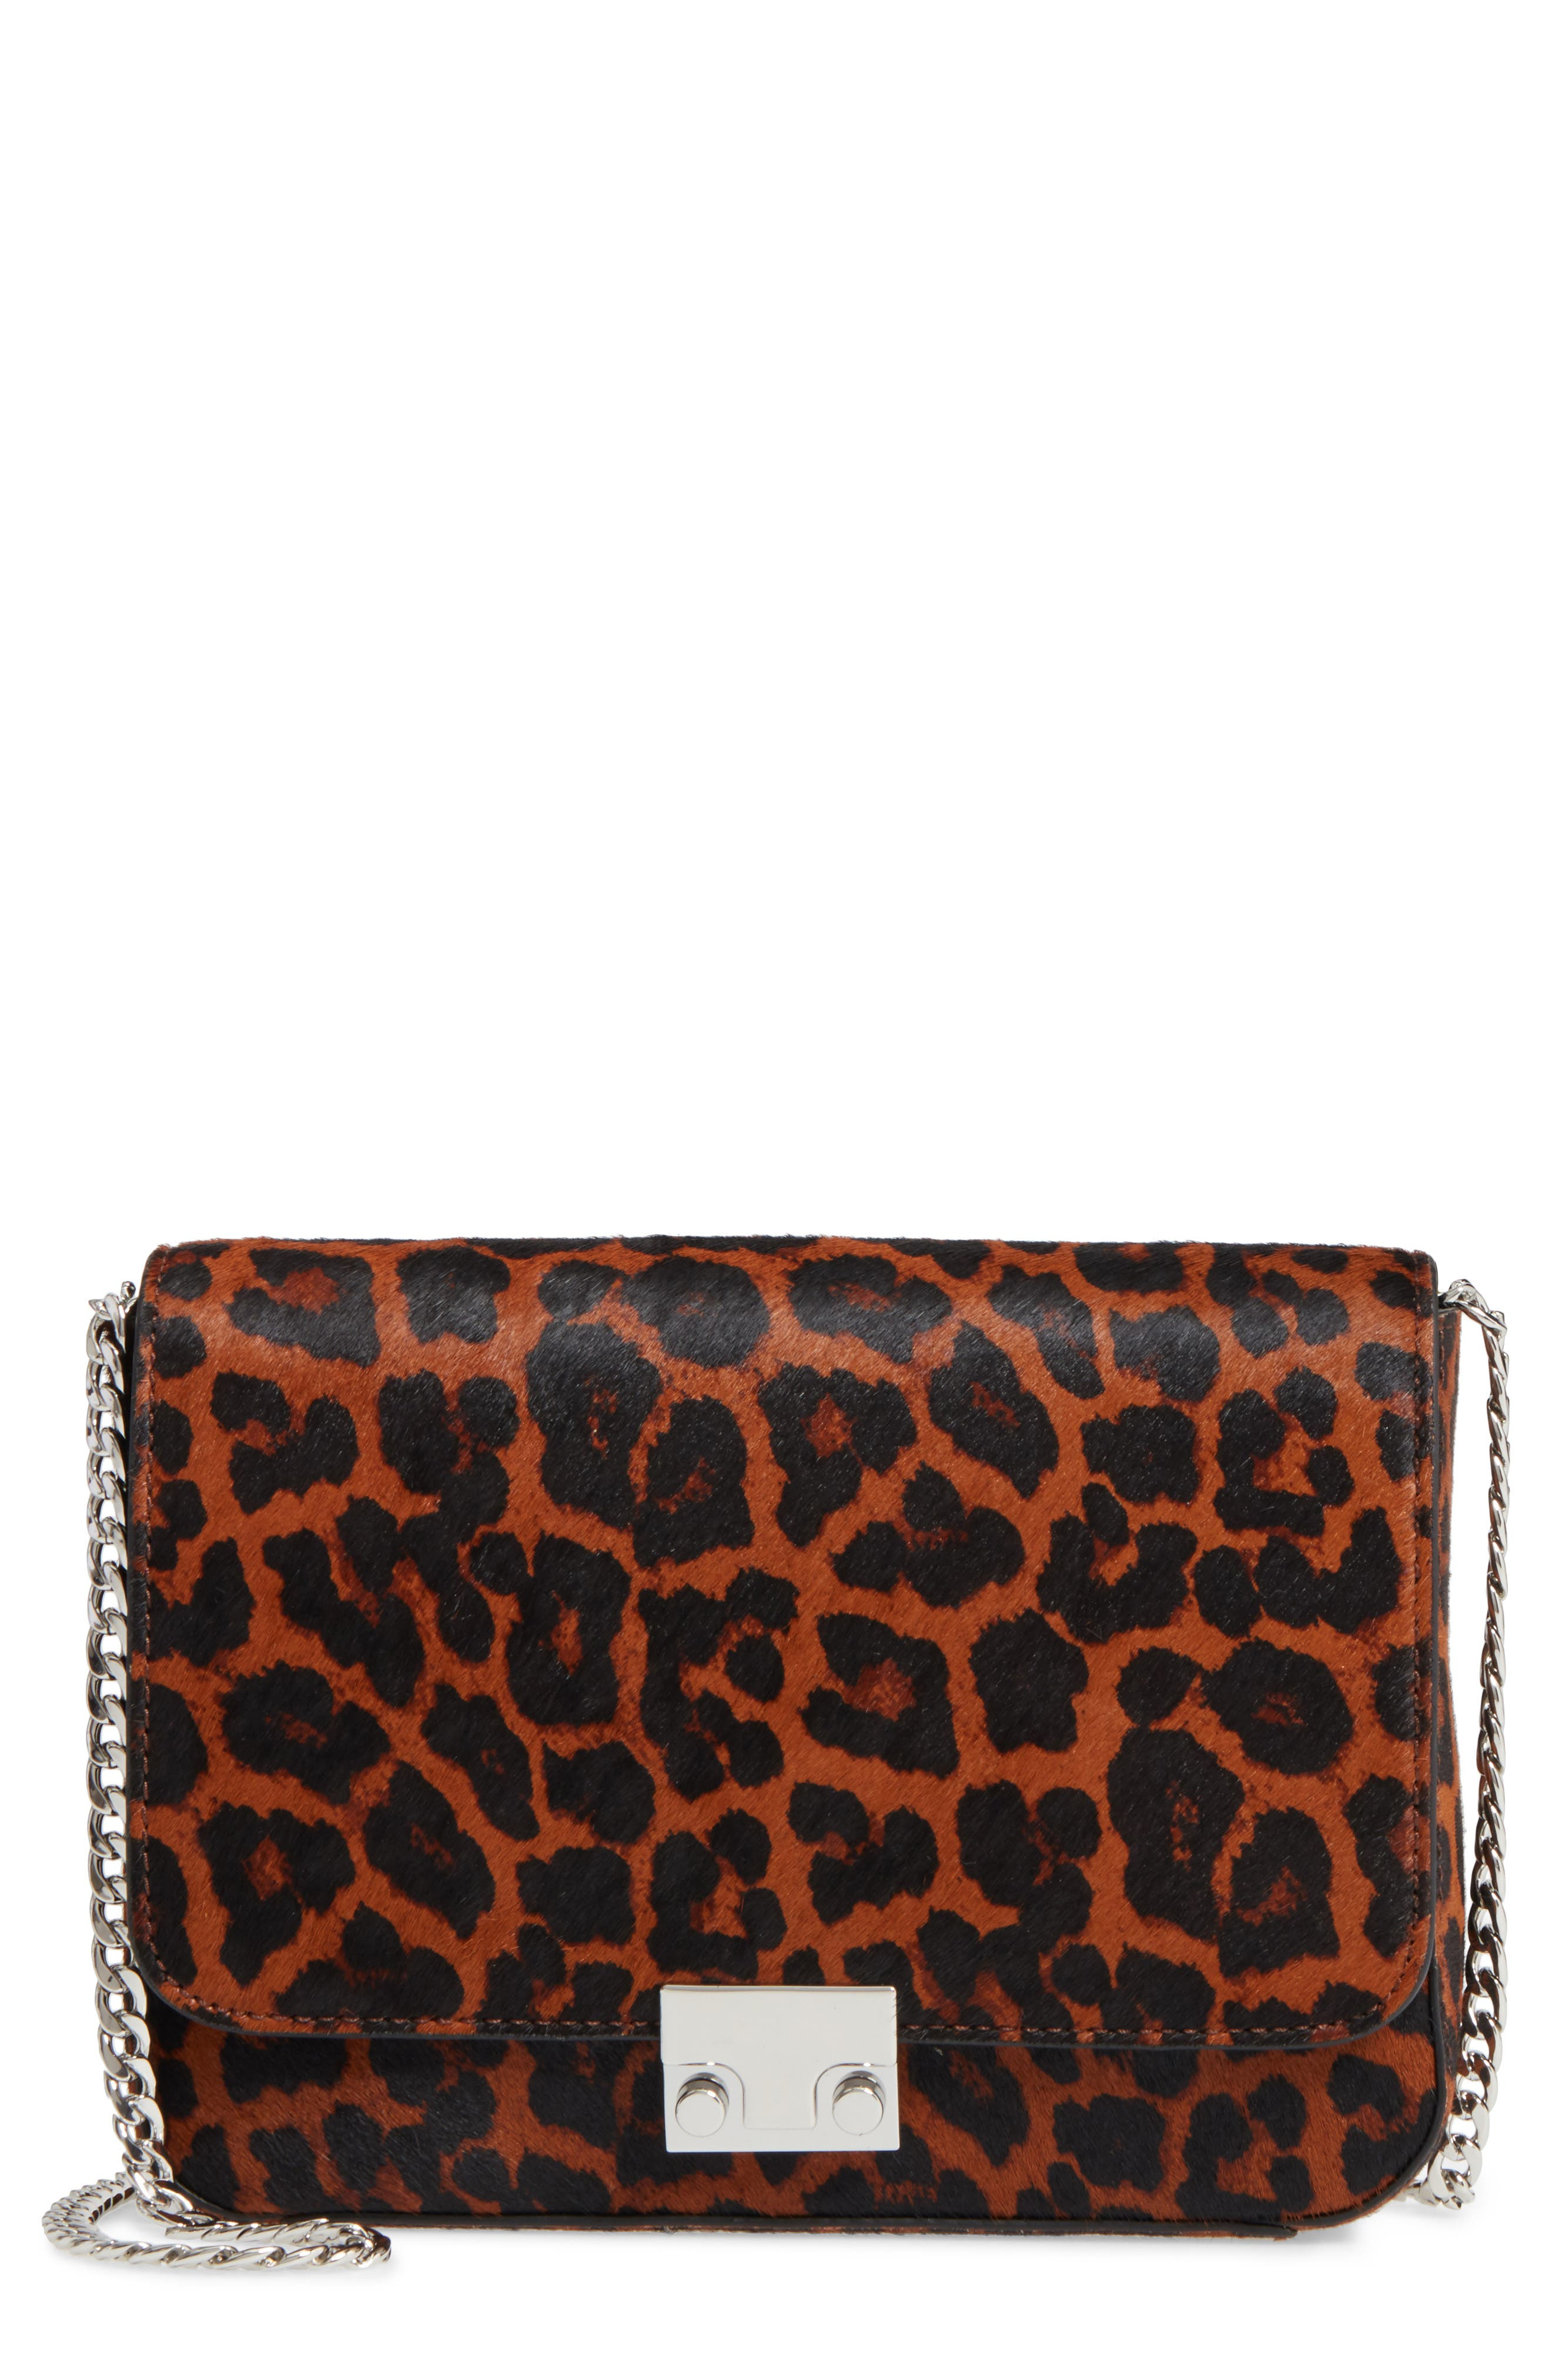 Loeffler Randall Lock Genuine Calf Hair Shoulder Bag